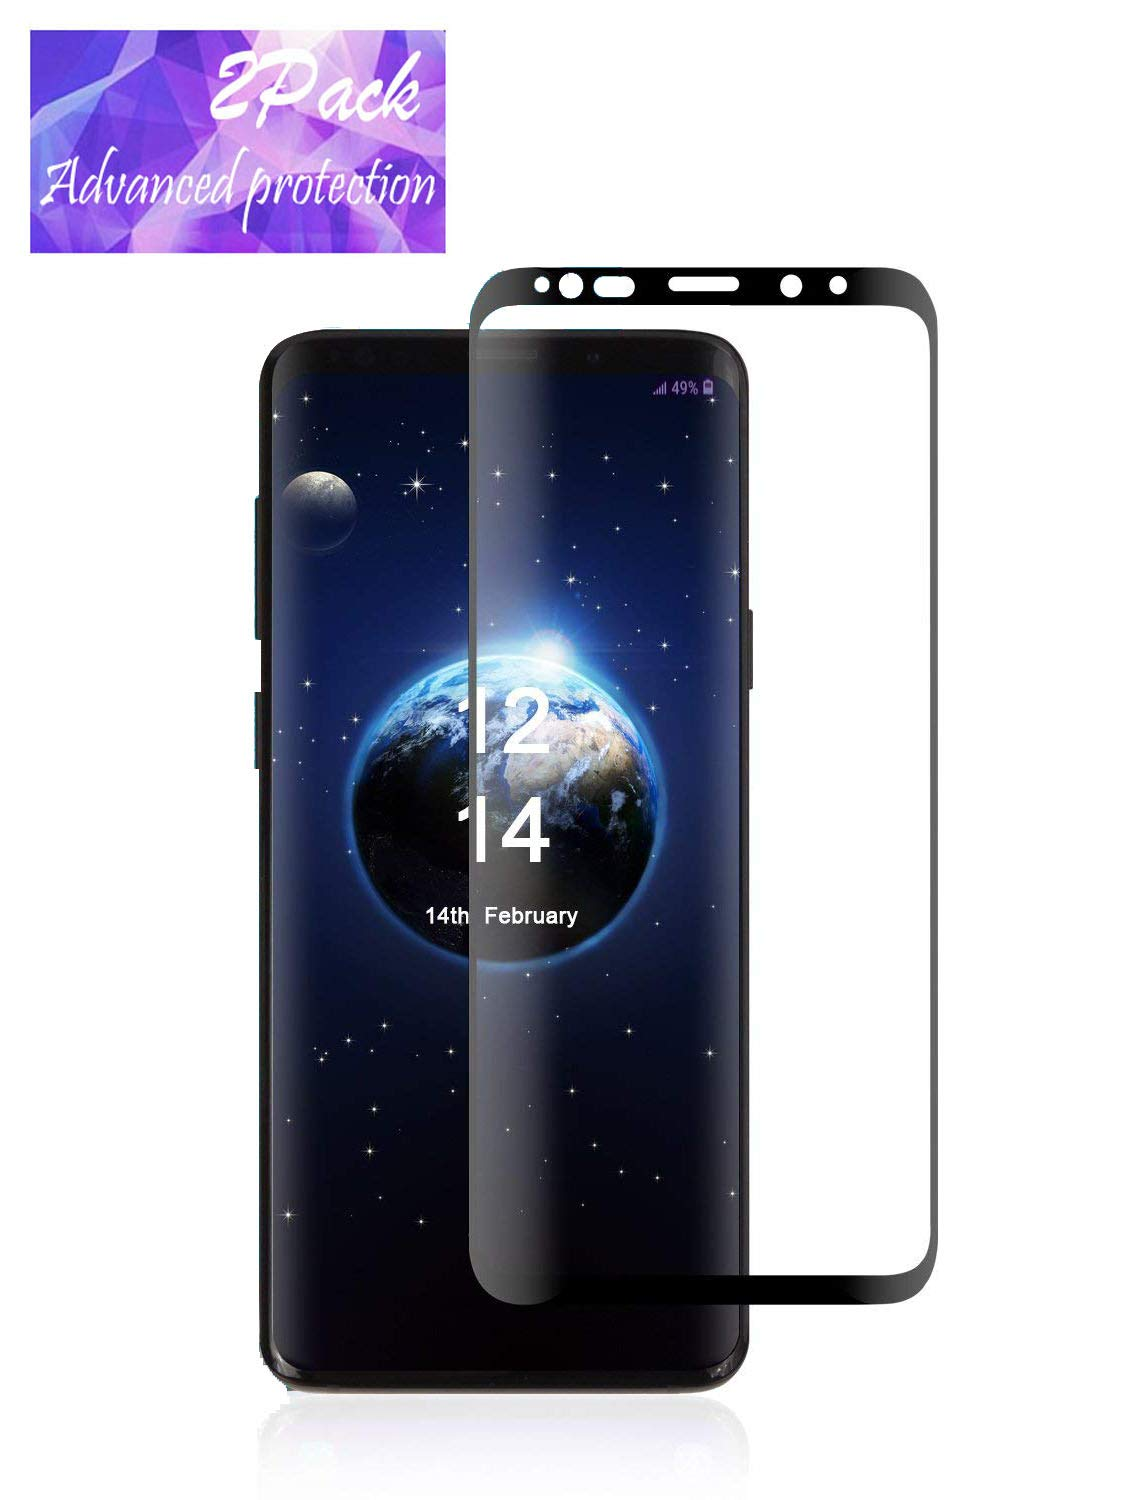 LEDitBe For Samsung Galaxy S9 Plus full Screen Protector, Anti-Scratch High Definition Bubble Free Anti-fingerprint Tempered Glass Screen Protector for Samsung Galaxy S9 Plus[Black] [2Pack]